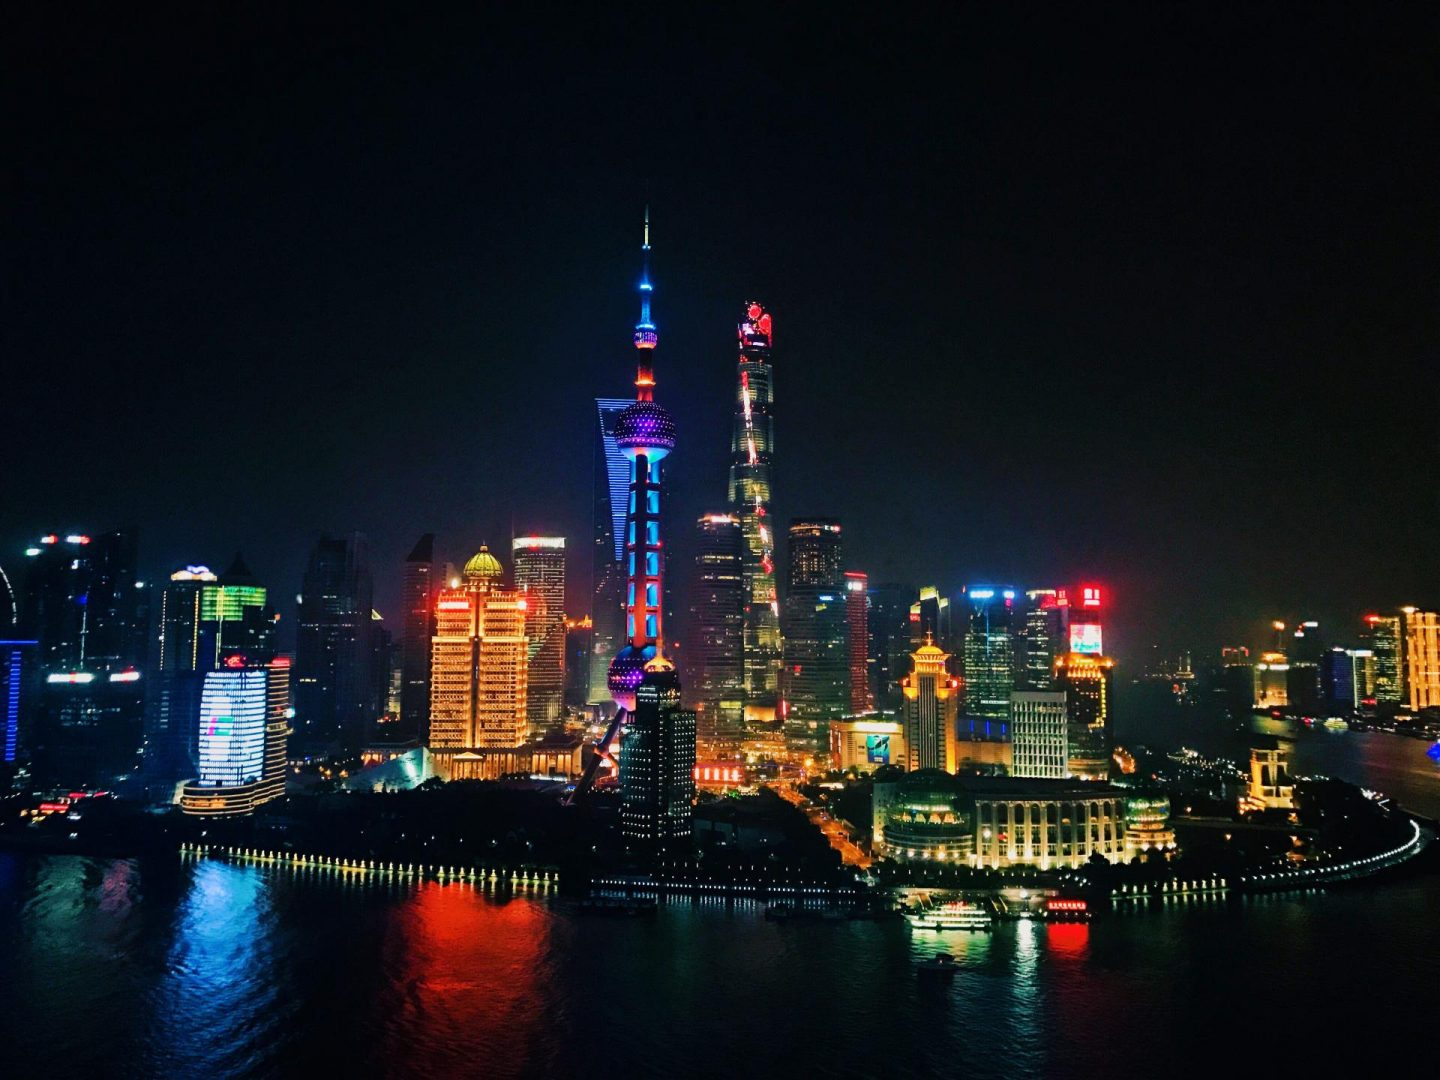 Night skyline in Shanghai